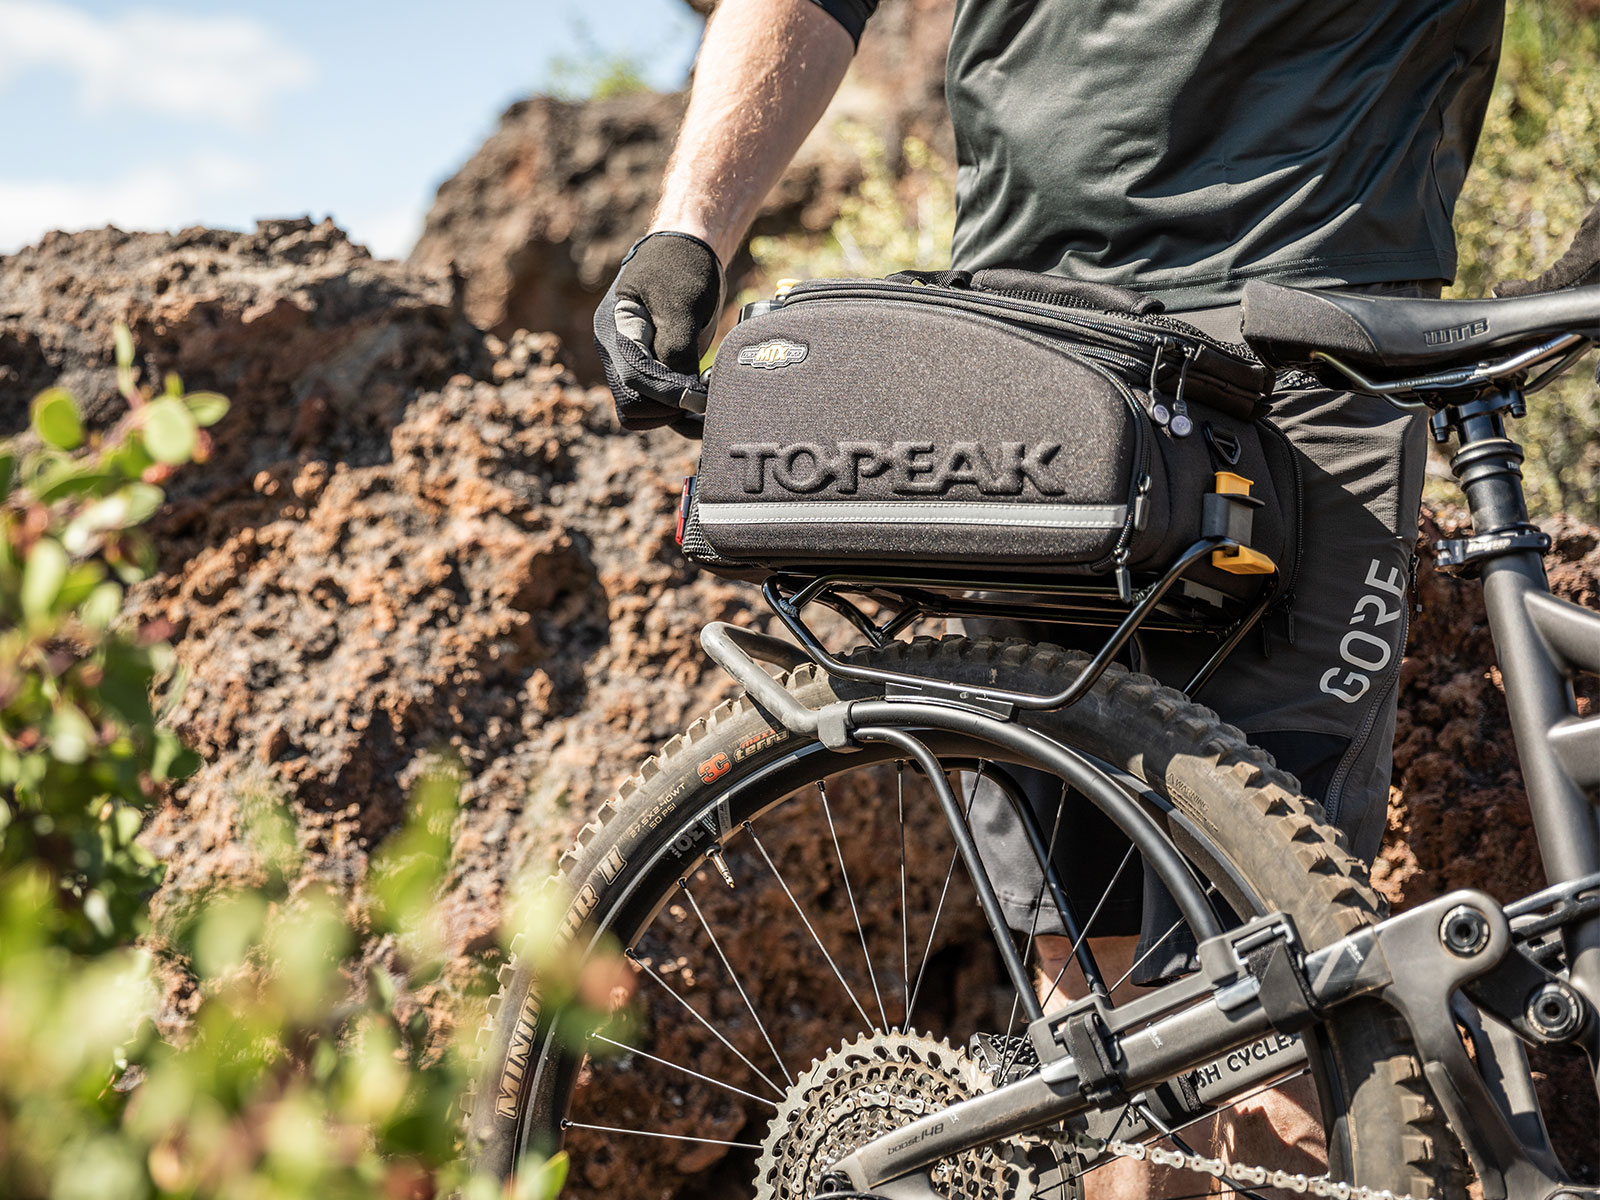 TETRARACK M2 (Mountain)